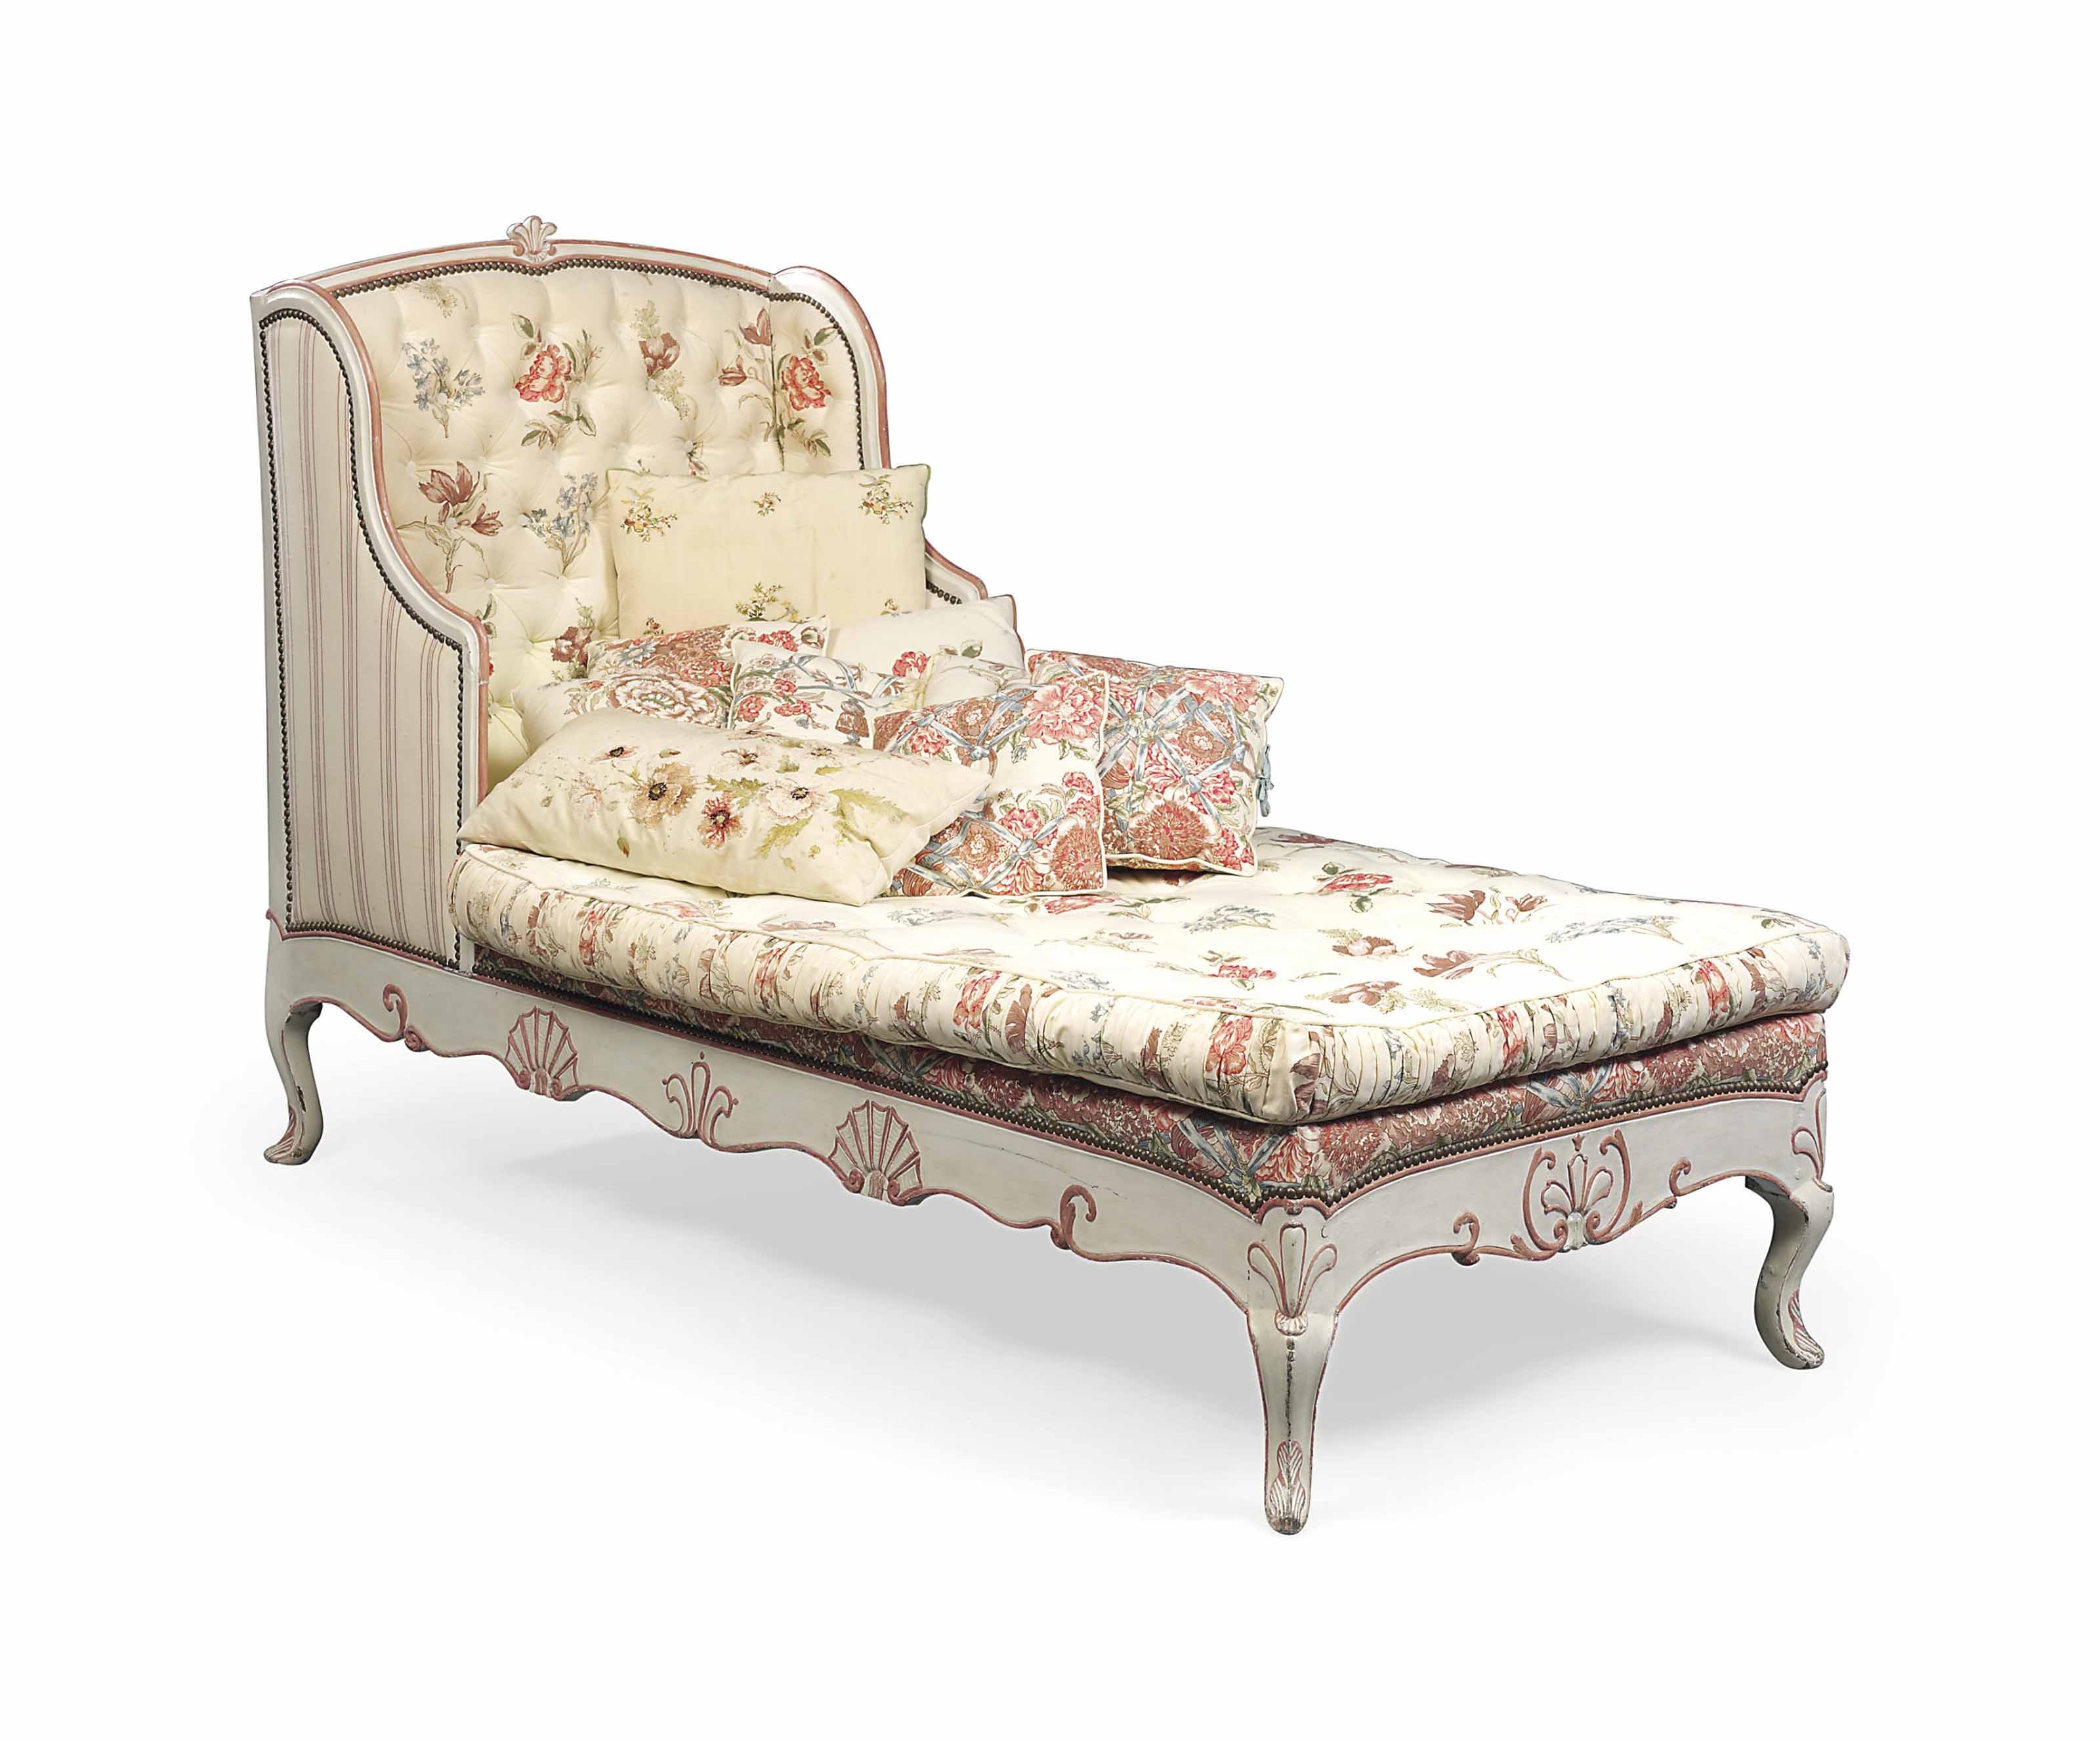 A LOUIS XV STYLE WHITE AND ROSE-PINK PAINTED CHAISE-LONGUE | MID ...